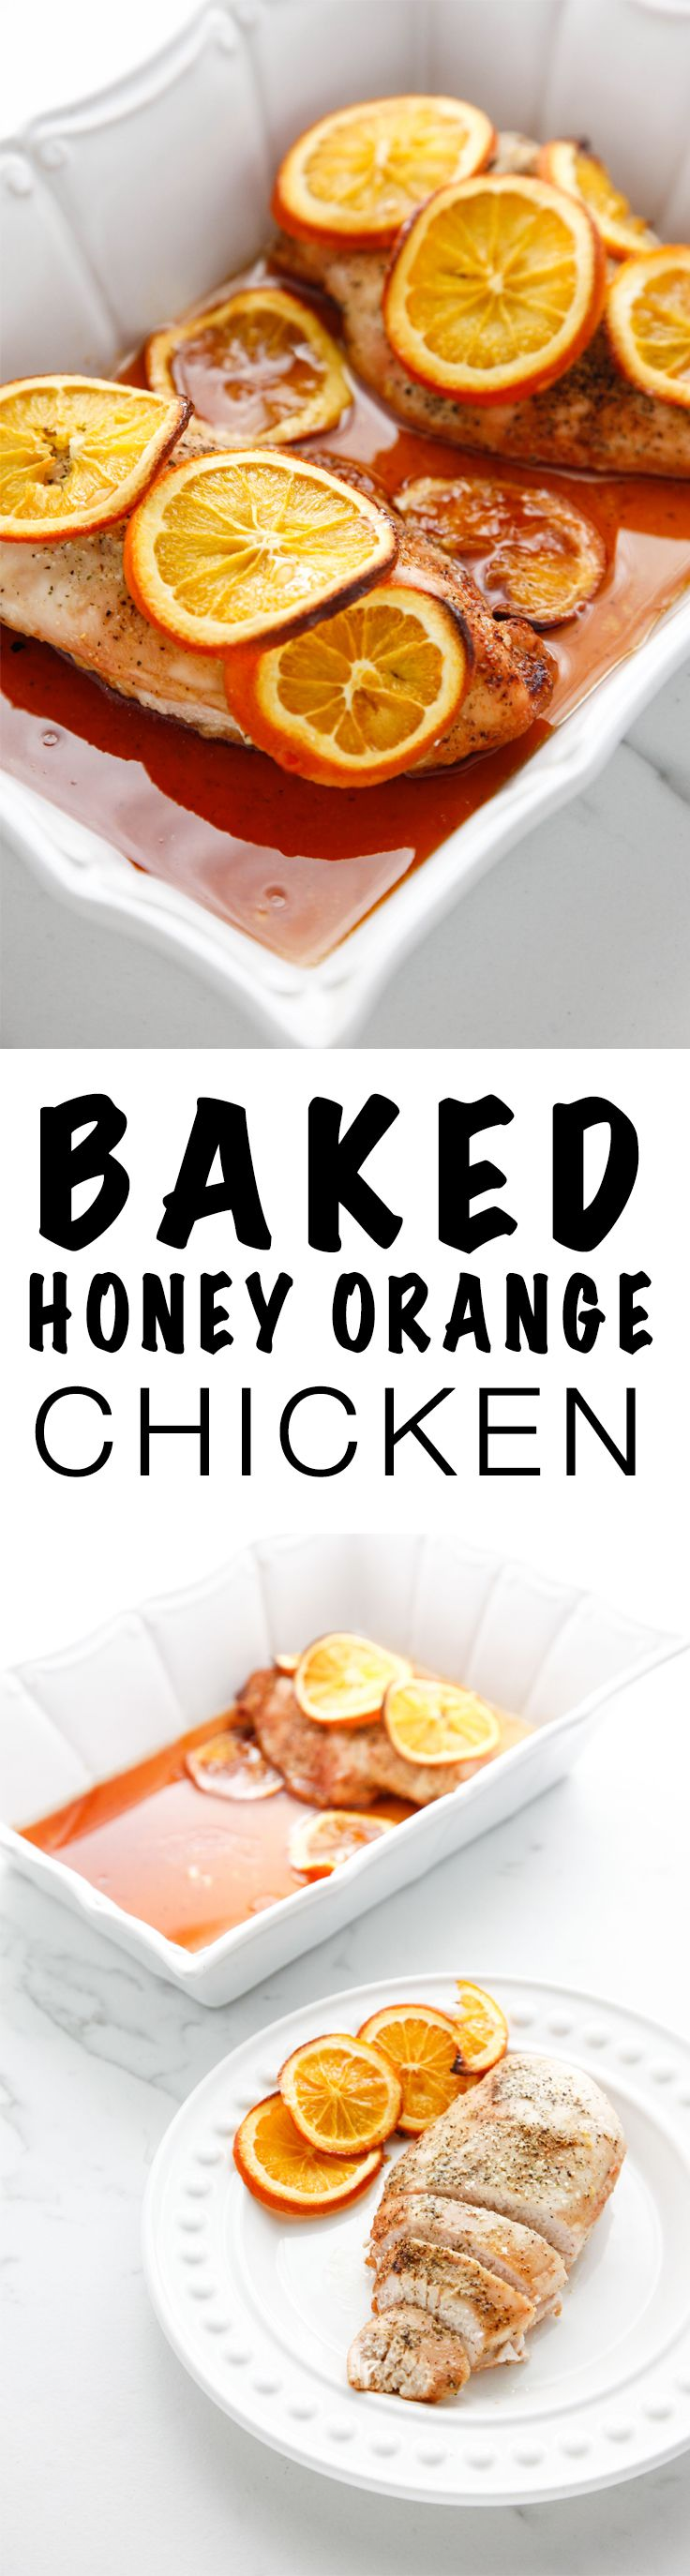 Baked Honey Orange Chicken via @thebrooklyncook